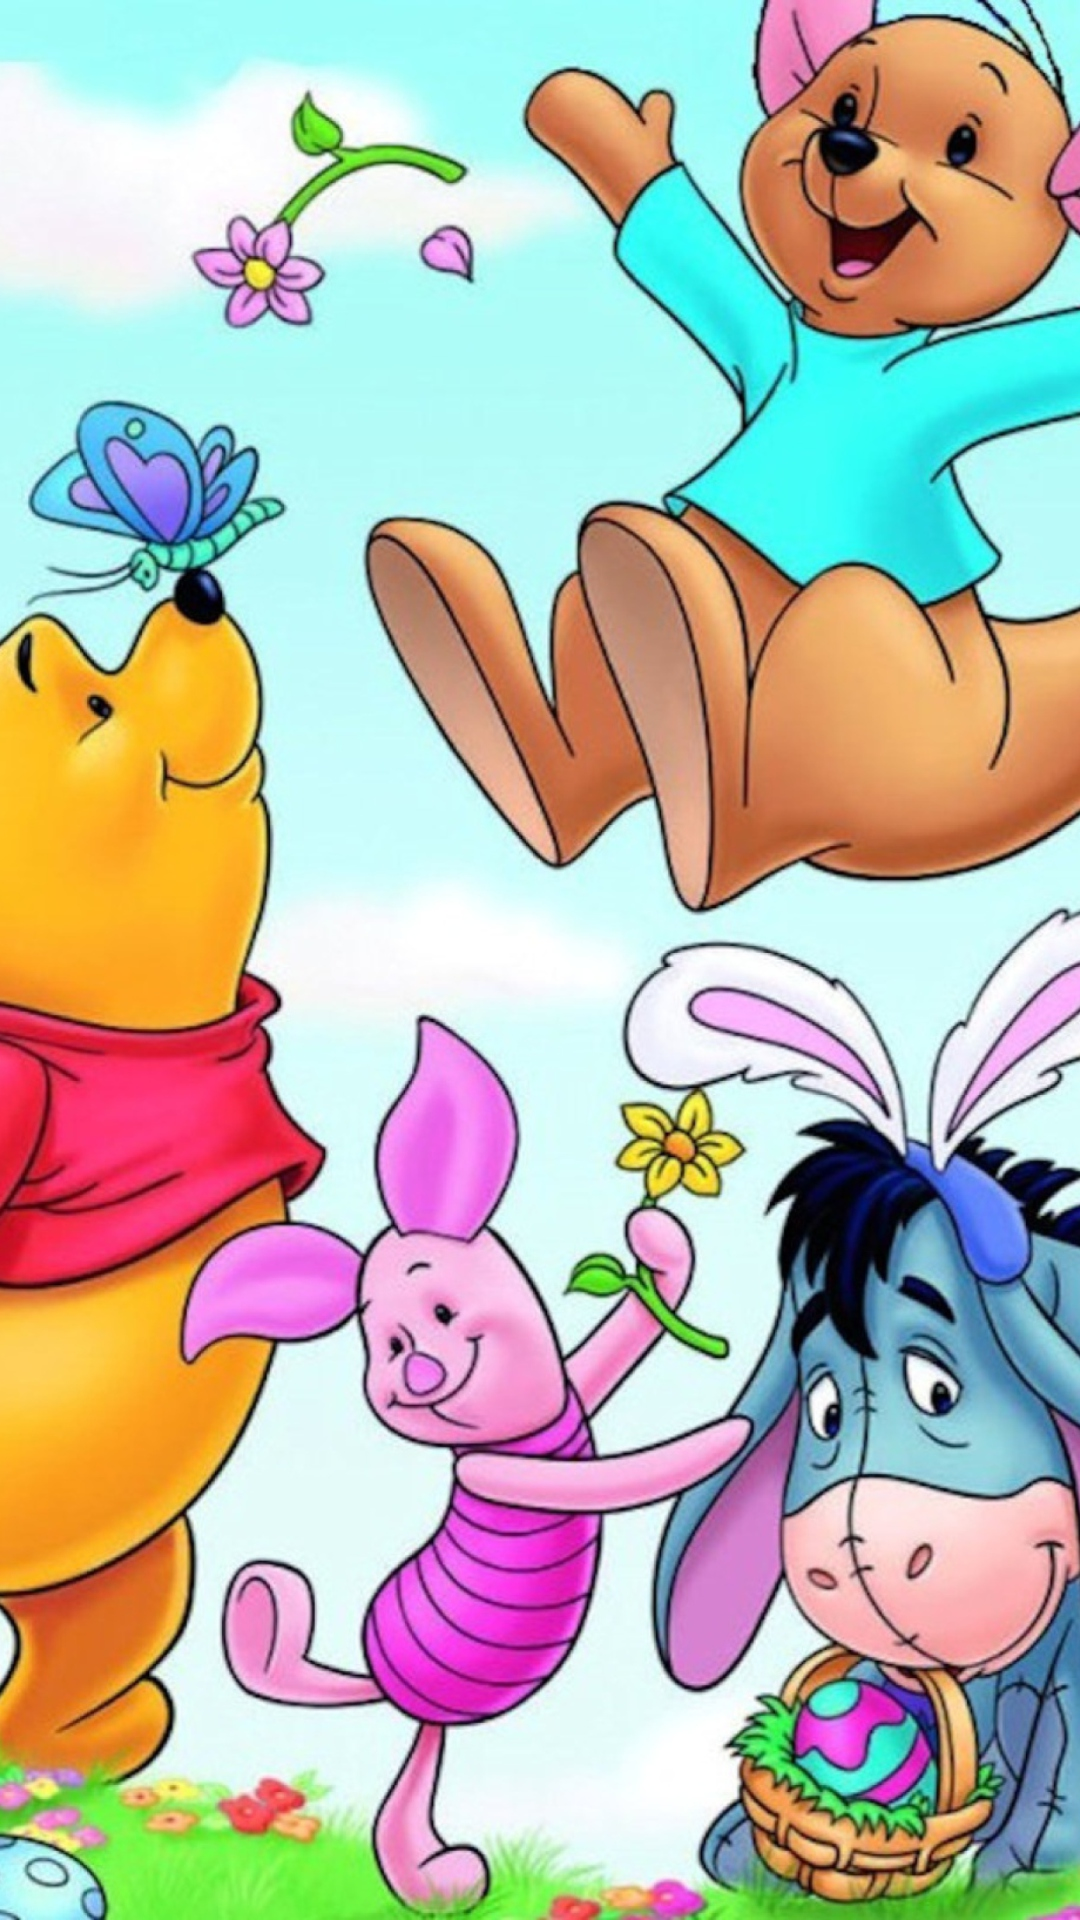 Winnie The Pooh Easter wallpaper 1080x1920